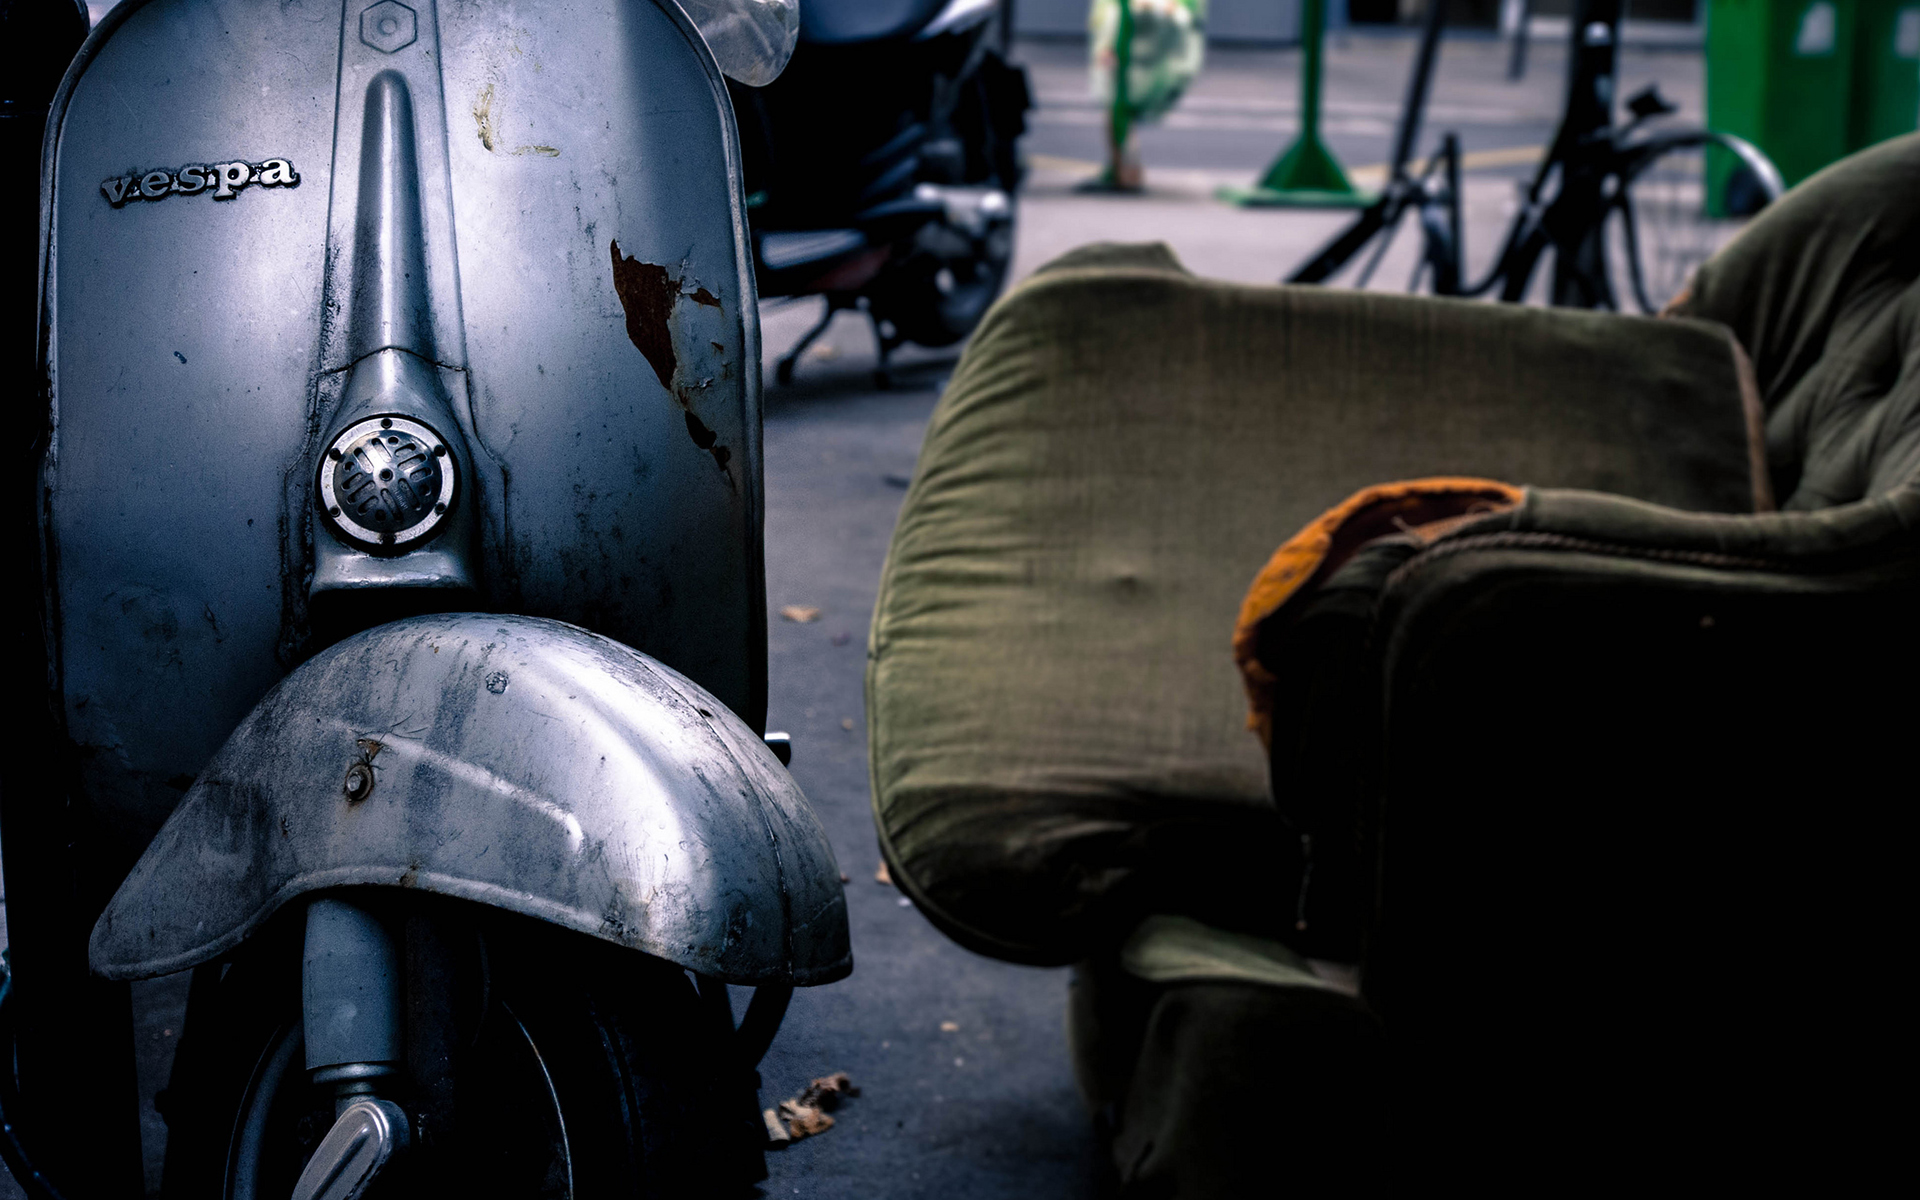 Old Vespa Scooter Exclusive HD Wallpapers 3916 1920x1200